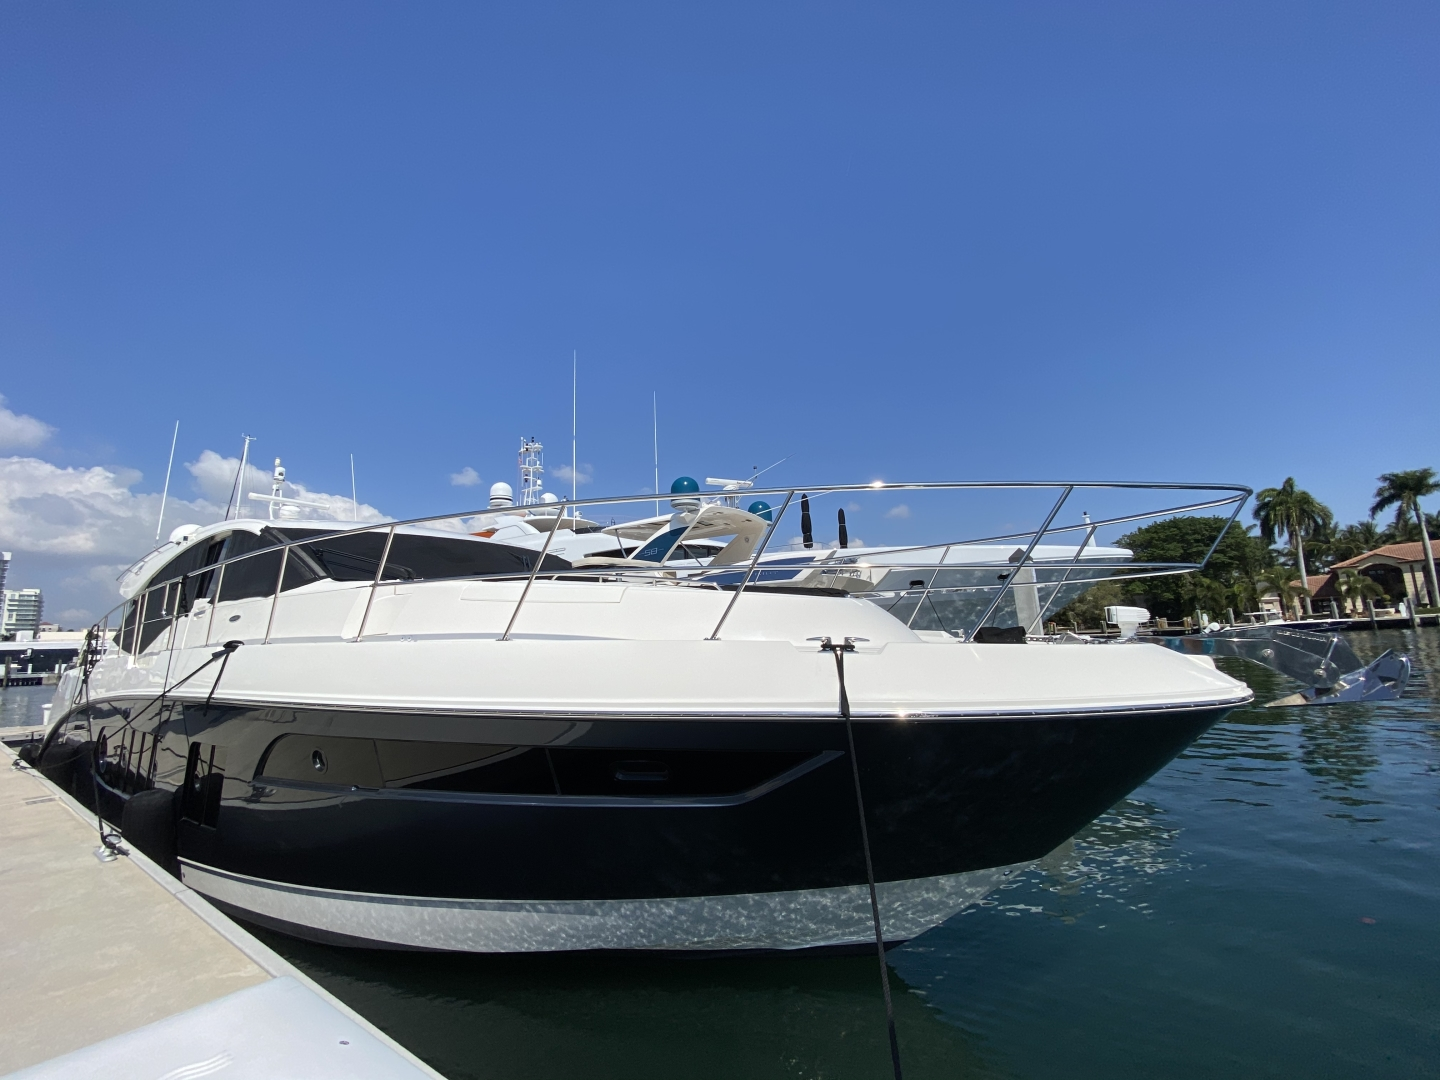 Sea Ray-L650 Express 2016-Cozy Fort Lauderdale-Florida-United States-2016 Sea Ray L650 Stbd Bow-1367786 | Thumbnail